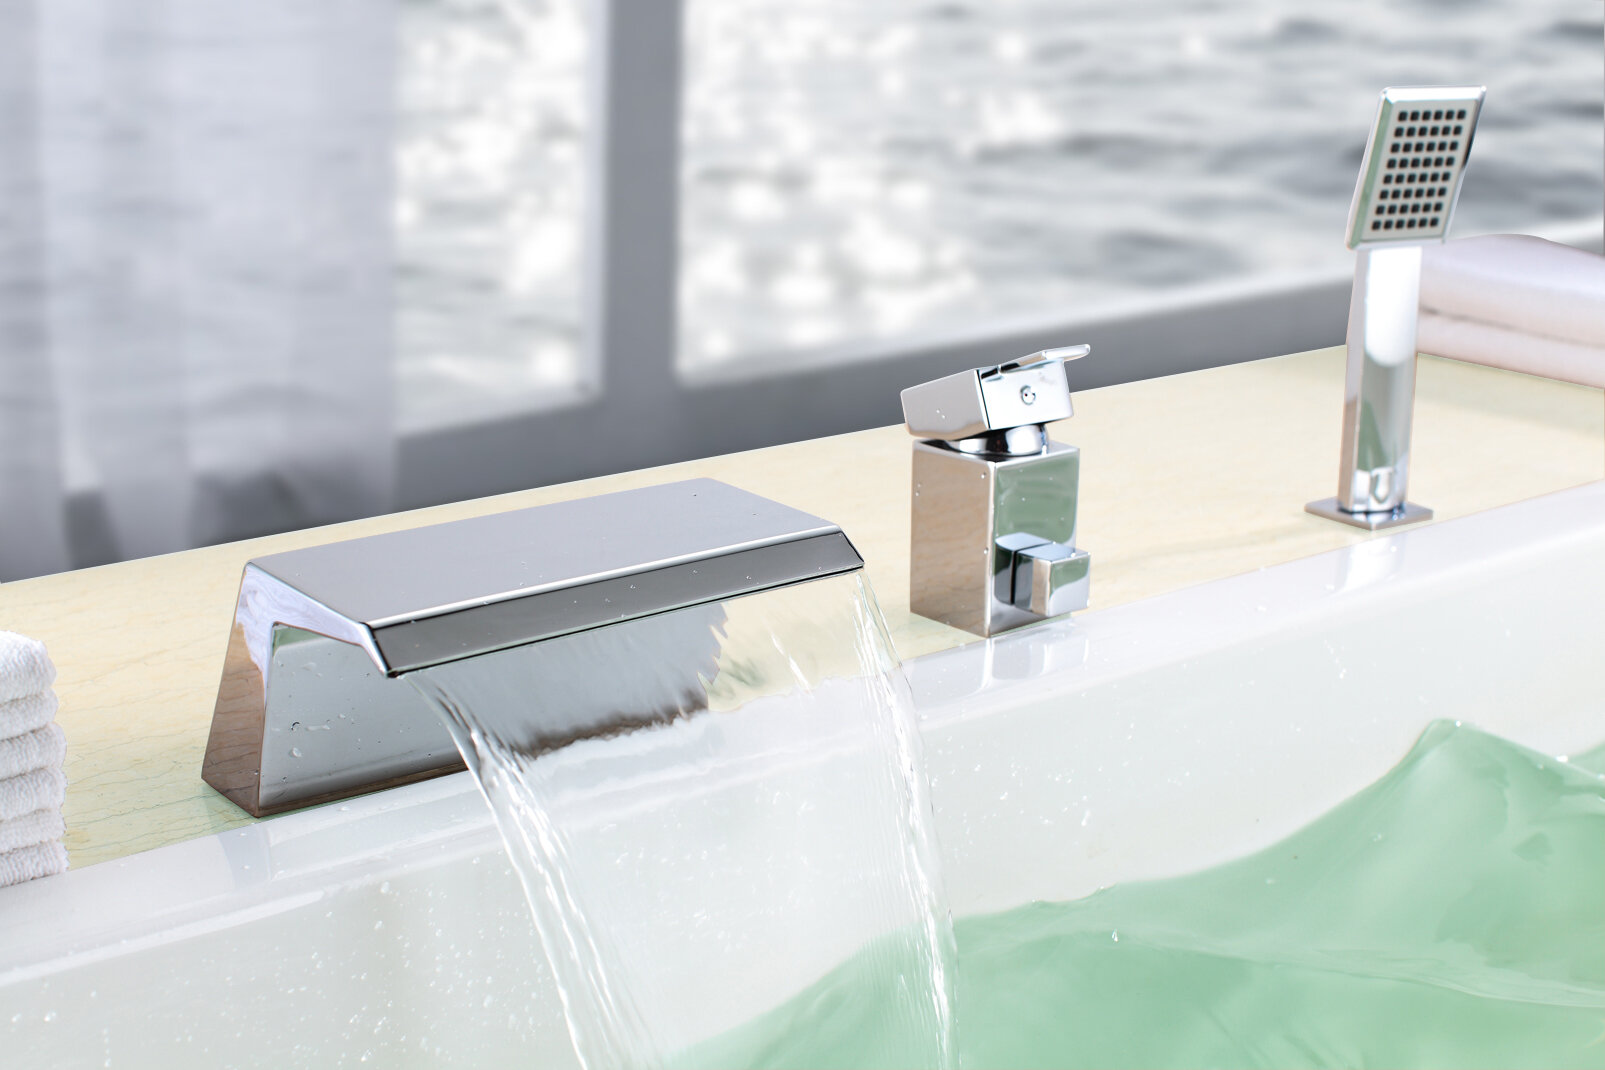 Picture of: Sumerain Contemporary Modern Single Handle Deck Mounted Roman Tub Faucet With Diverter And Handshower Reviews Wayfair